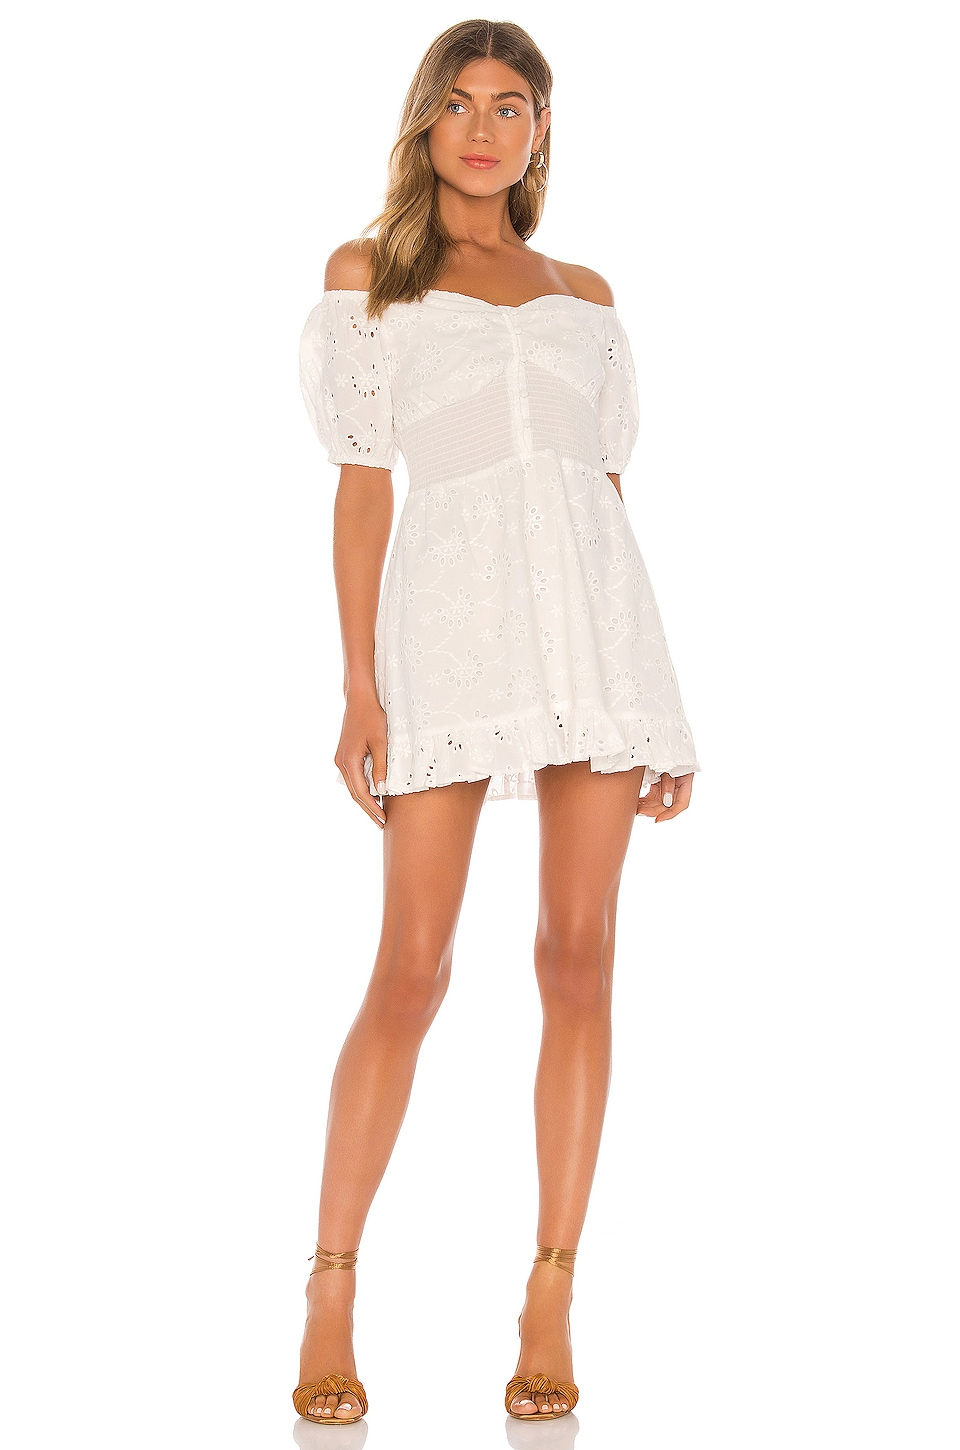 Finders Keepers Ditsy Doo Mini Dress in White